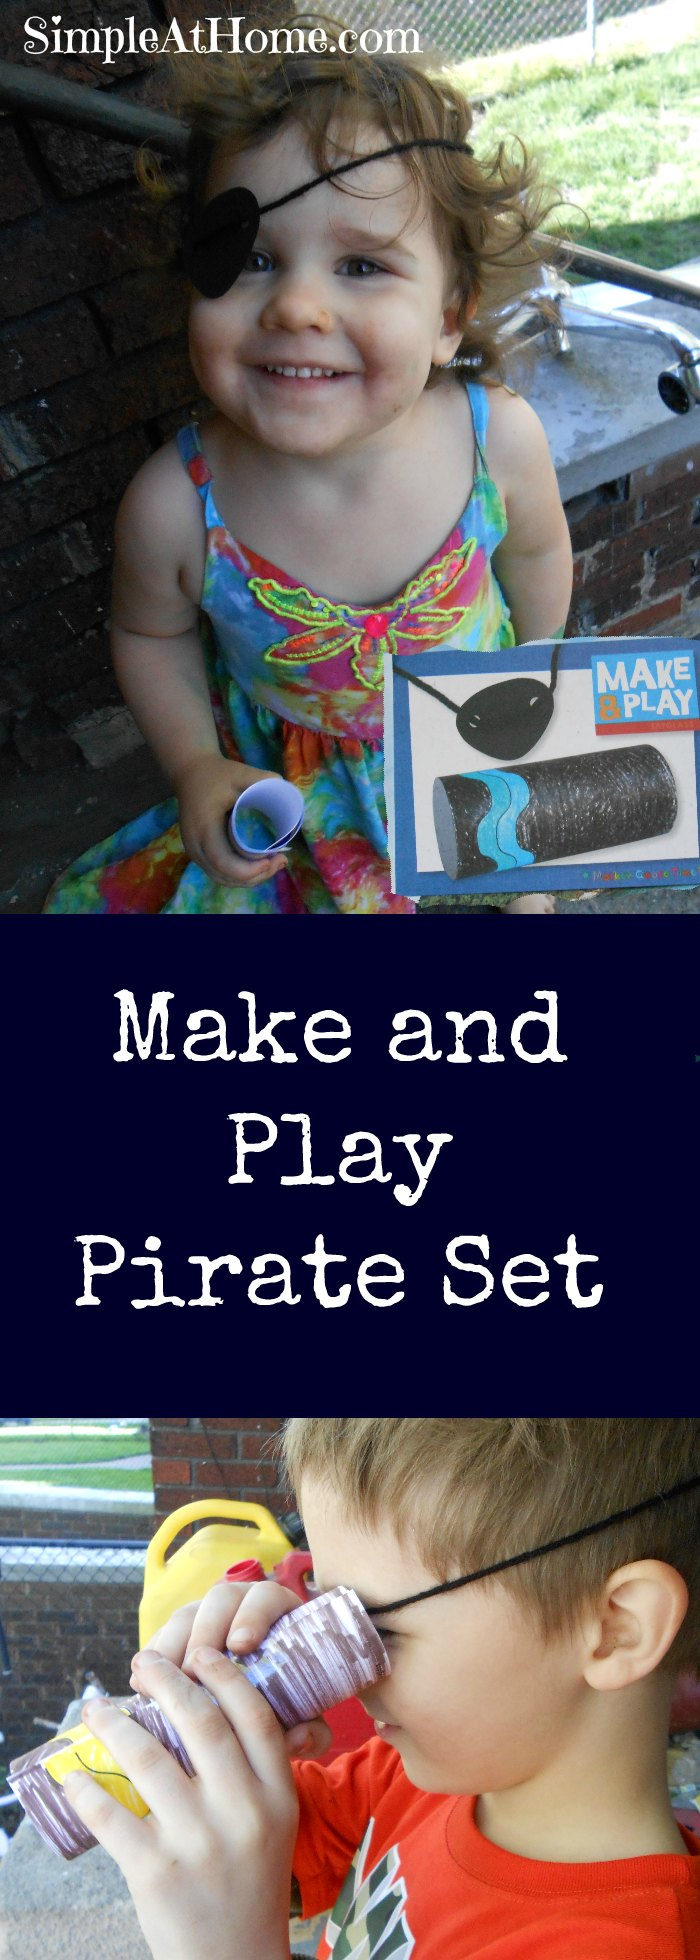 Make and play pirate pretend play set | kids crafts | kids activities